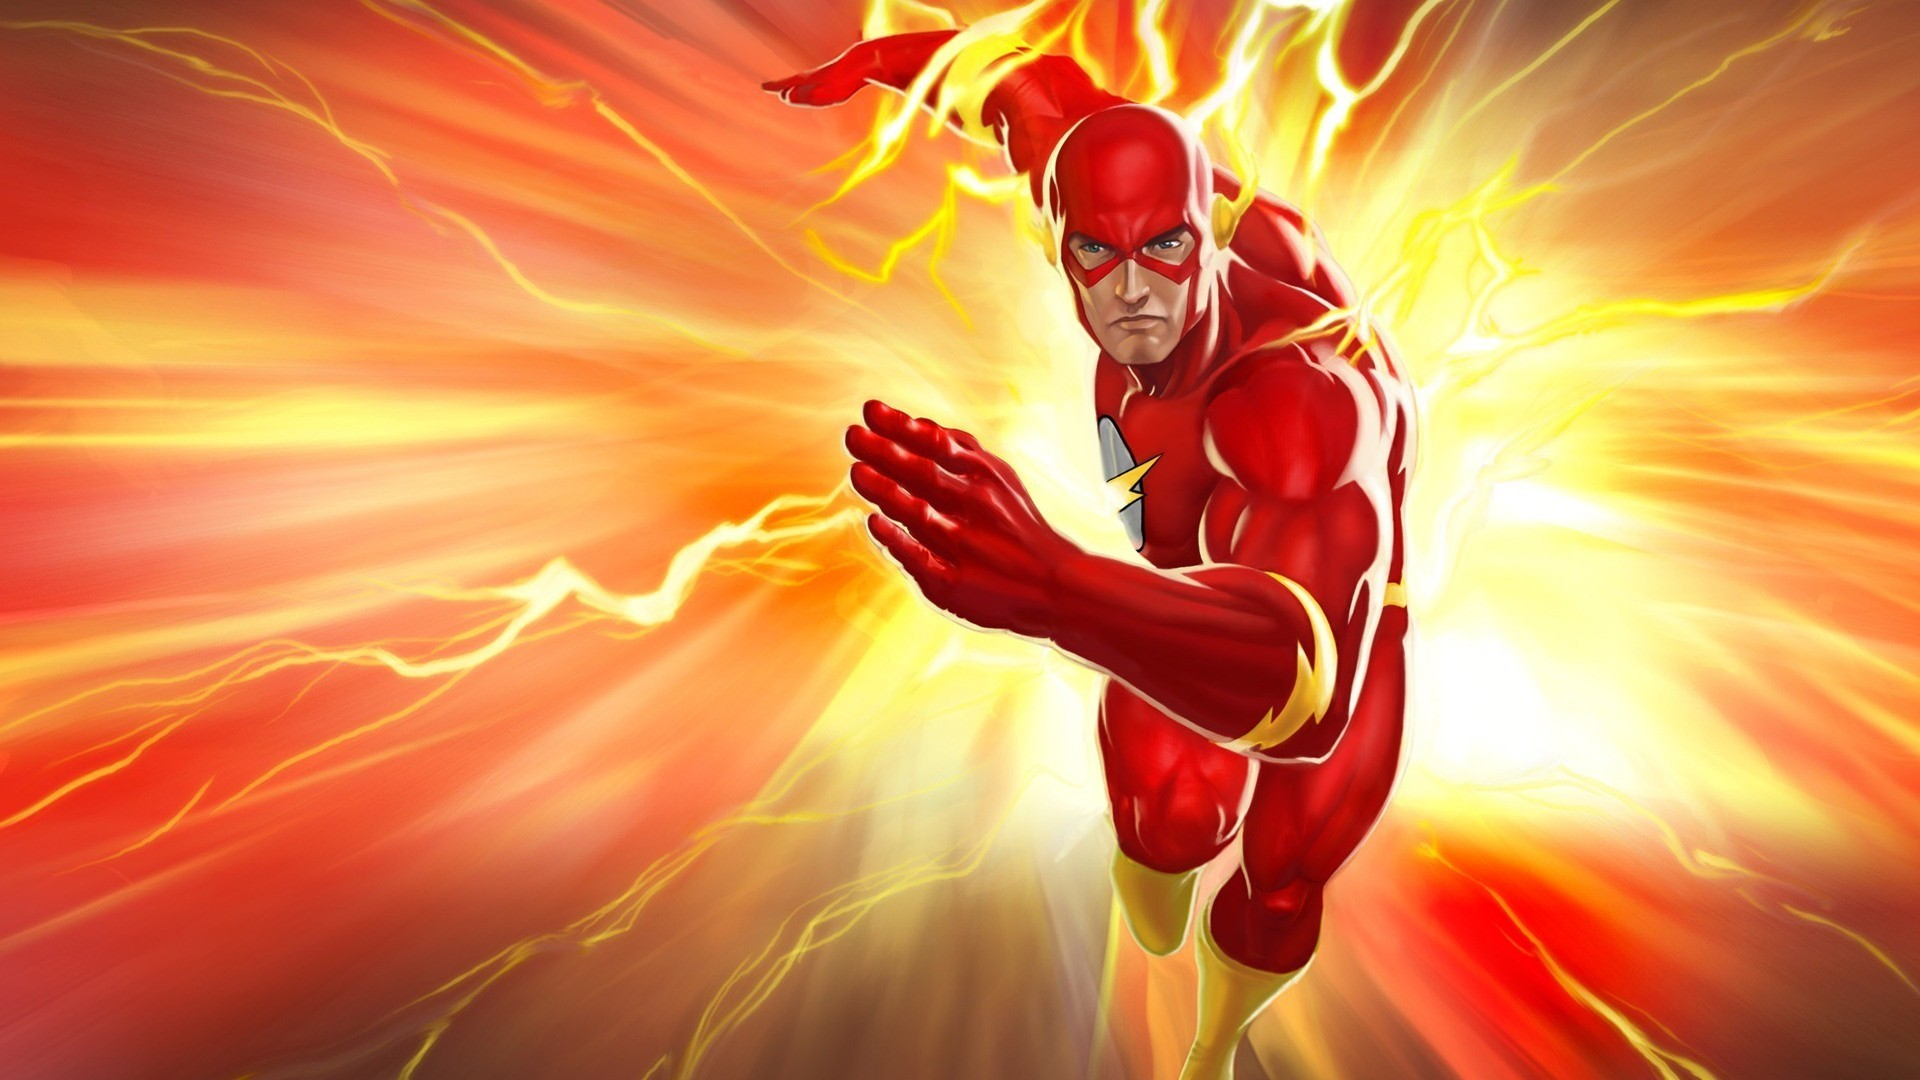 Download free the flash wallpapers for your mobile phone Zedge